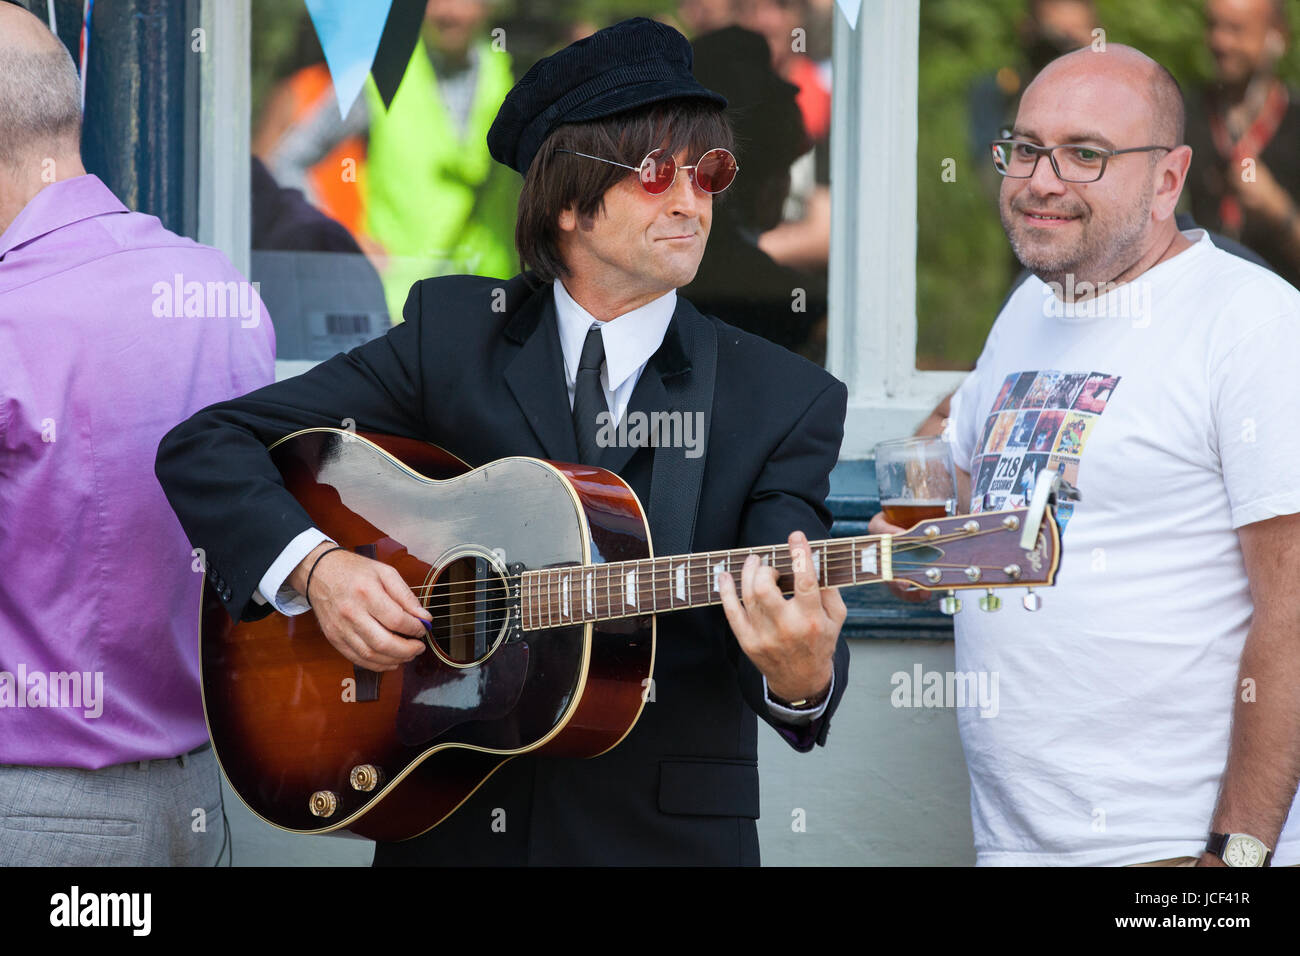 15th June 2017 A Member Of Beatles Tribute Band The Upbeat Plays After Actor Singer And Songwriter Kate Robbins Unveiled Blue Plaque On BBC